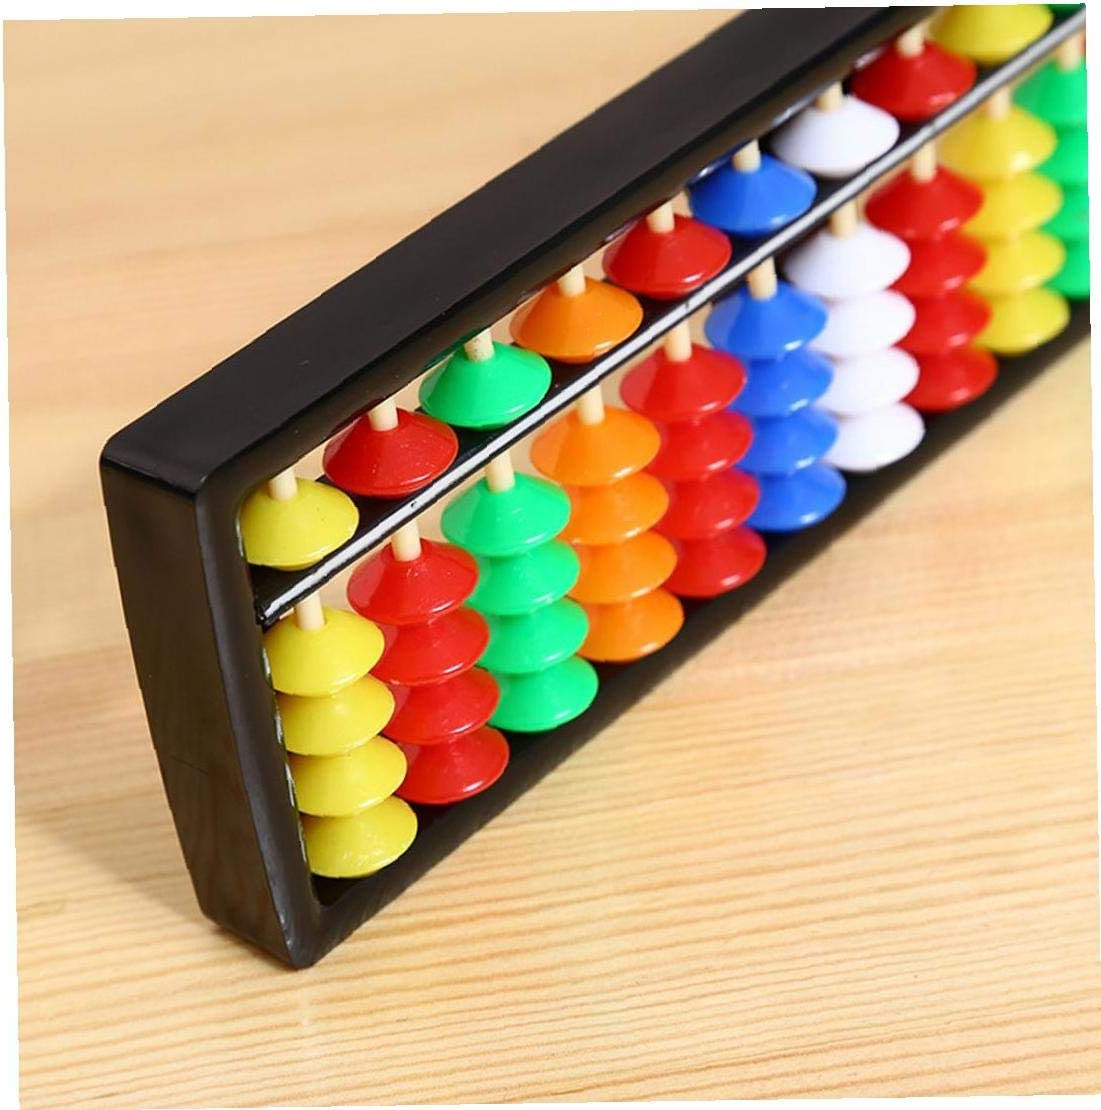 gaixample.org Abacuses Stationery & Office Supplies Plastic Abacus ...